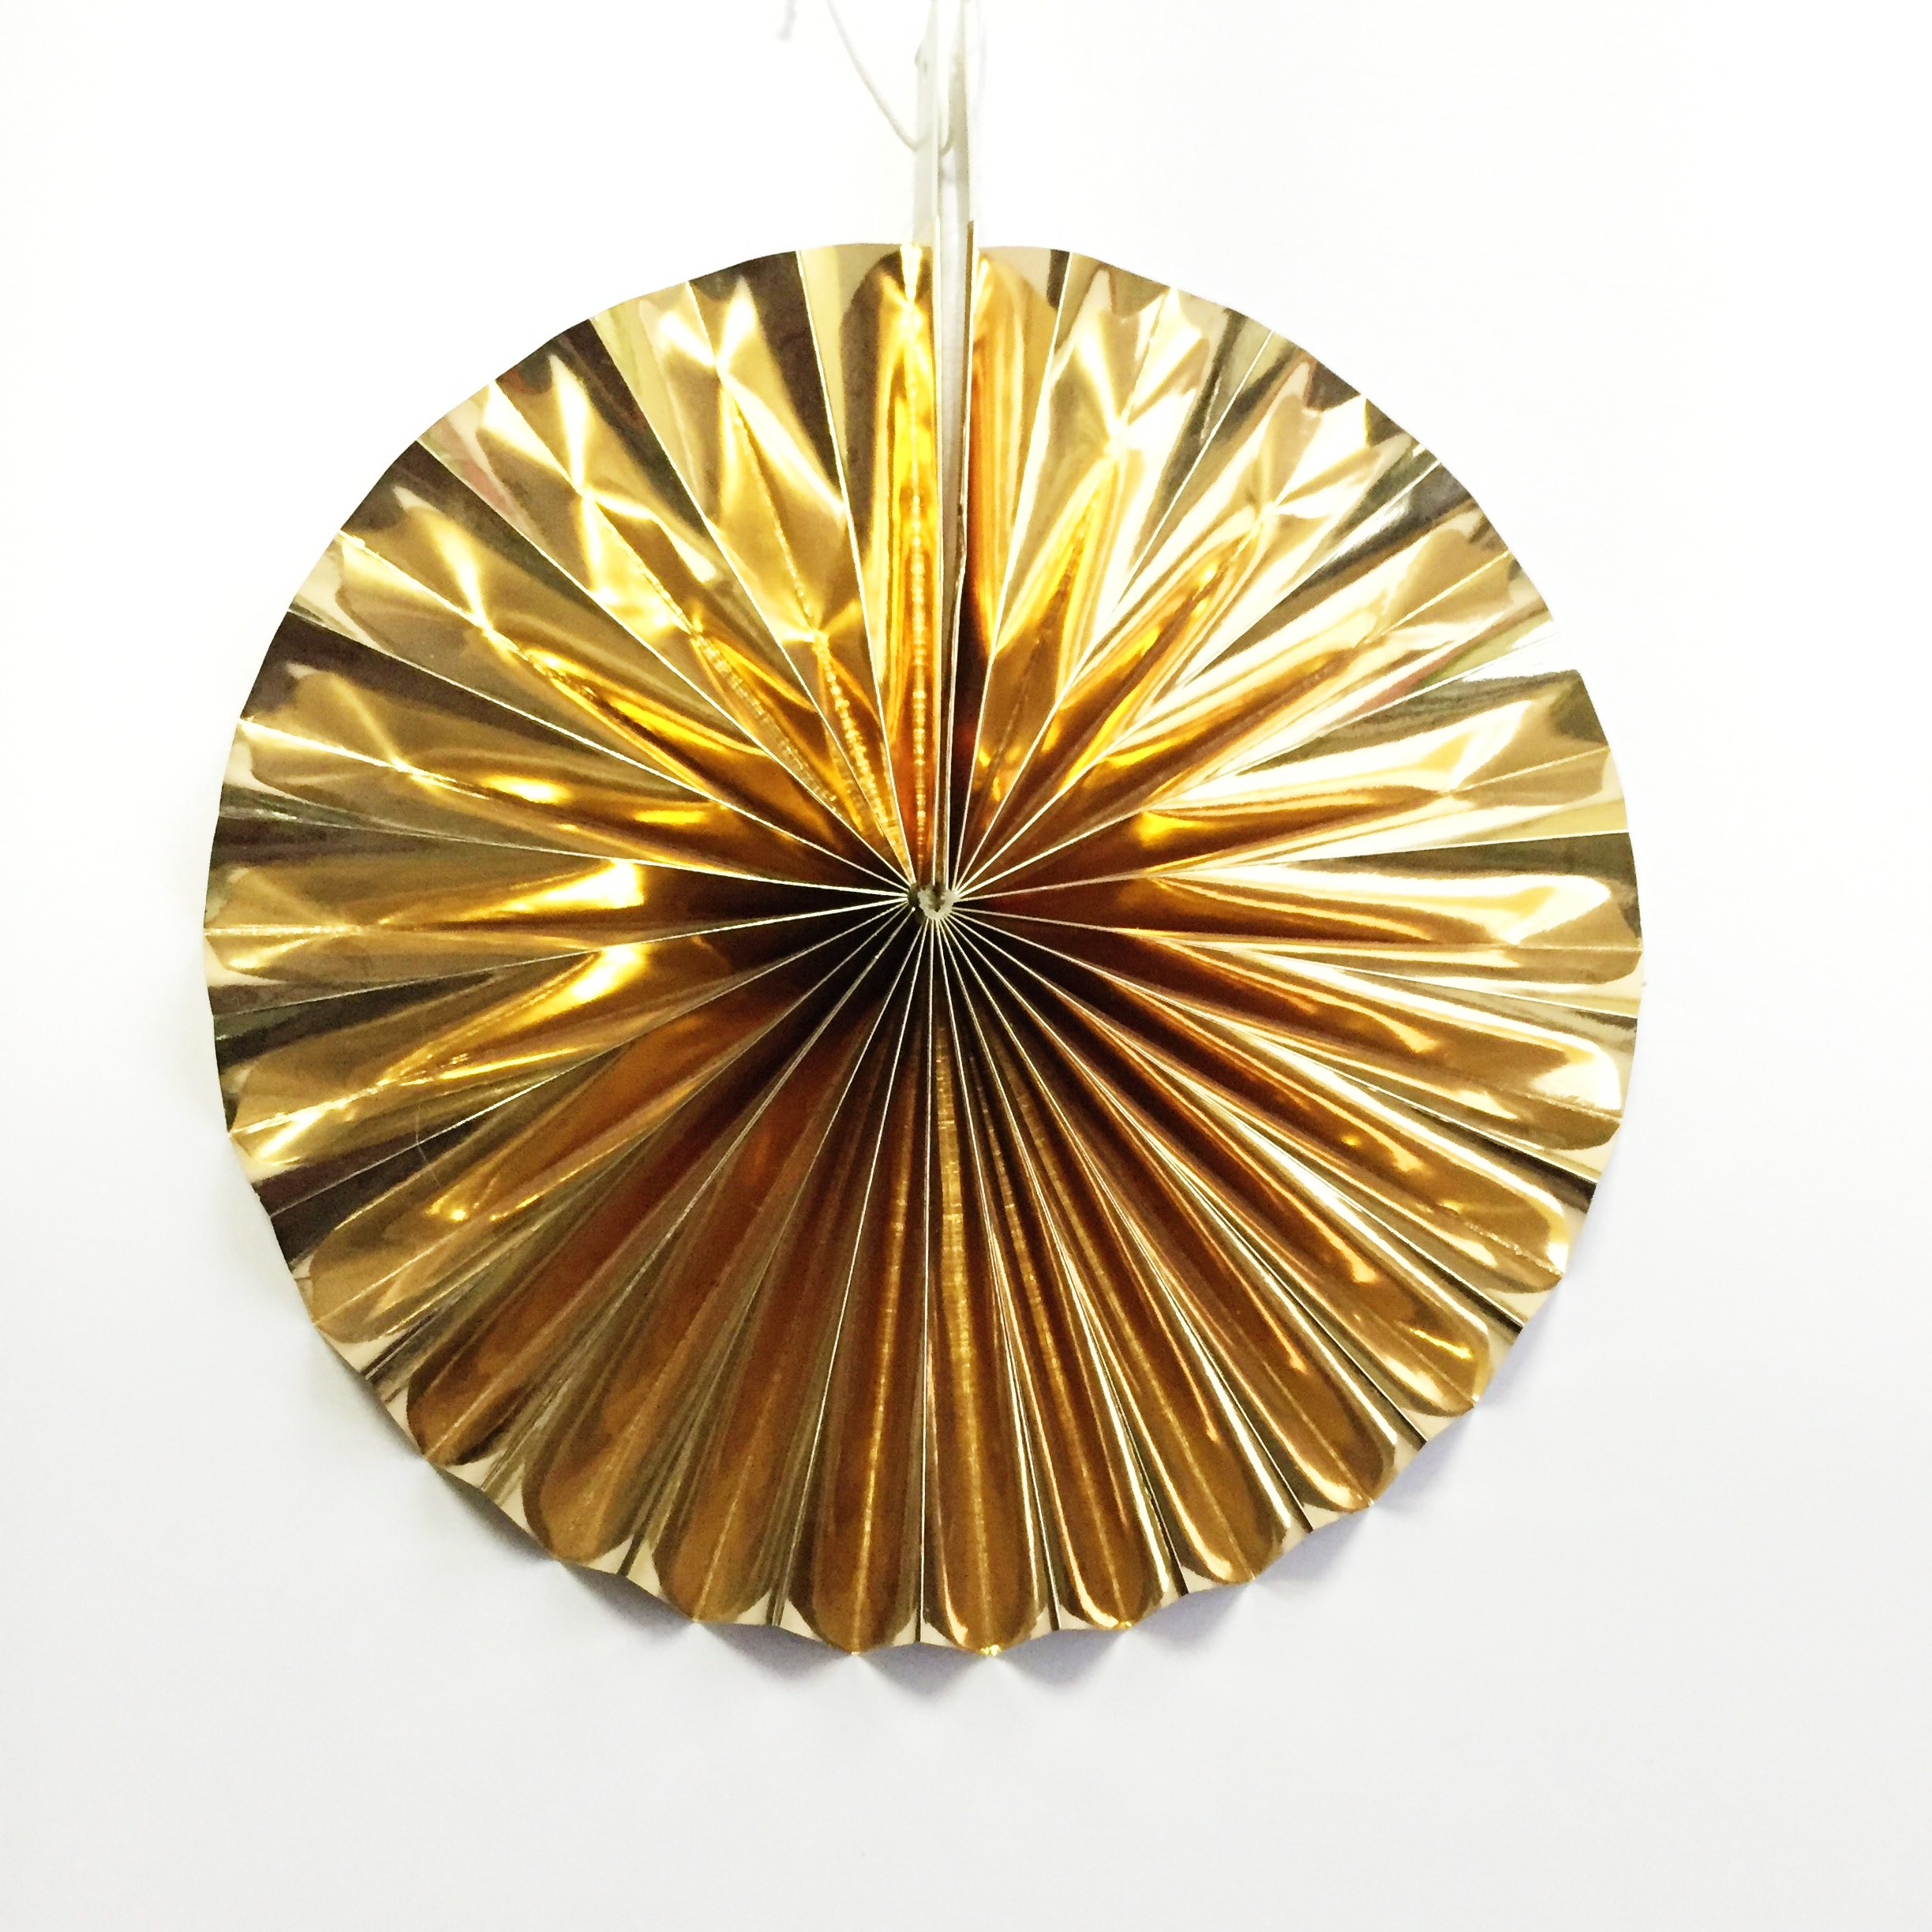 gold folding fan for party decoration